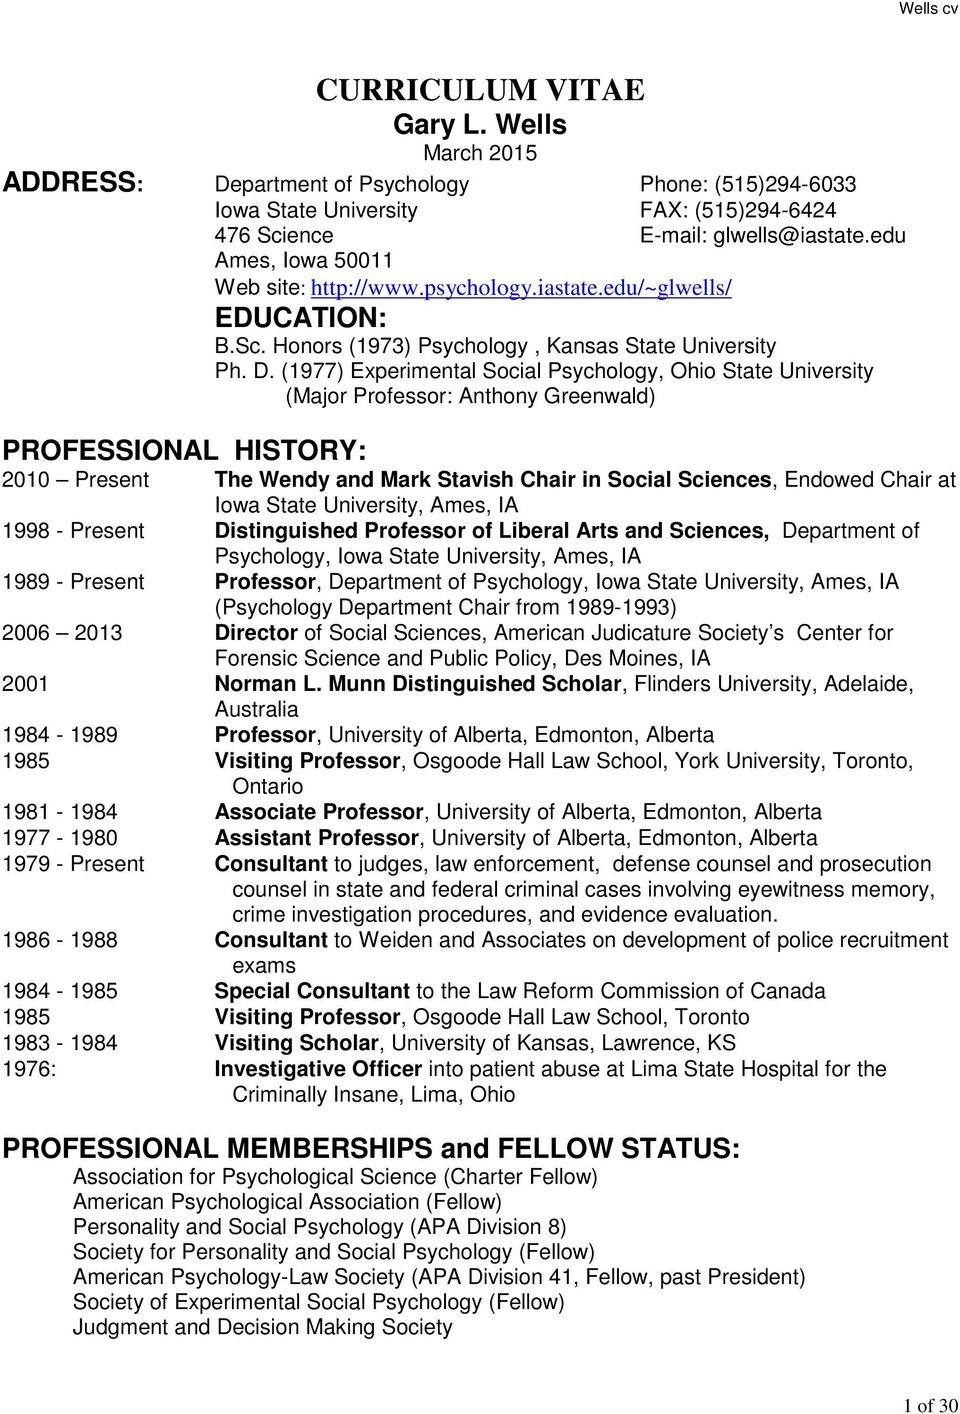 (1977) Experimental Social Psychology, Ohio State University (Major Professor: Anthony Greenwald) PROFESSIONAL HISTORY: 2010 Present The Wendy and Mark Stavish Chair in Social Sciences, Endowed Chair